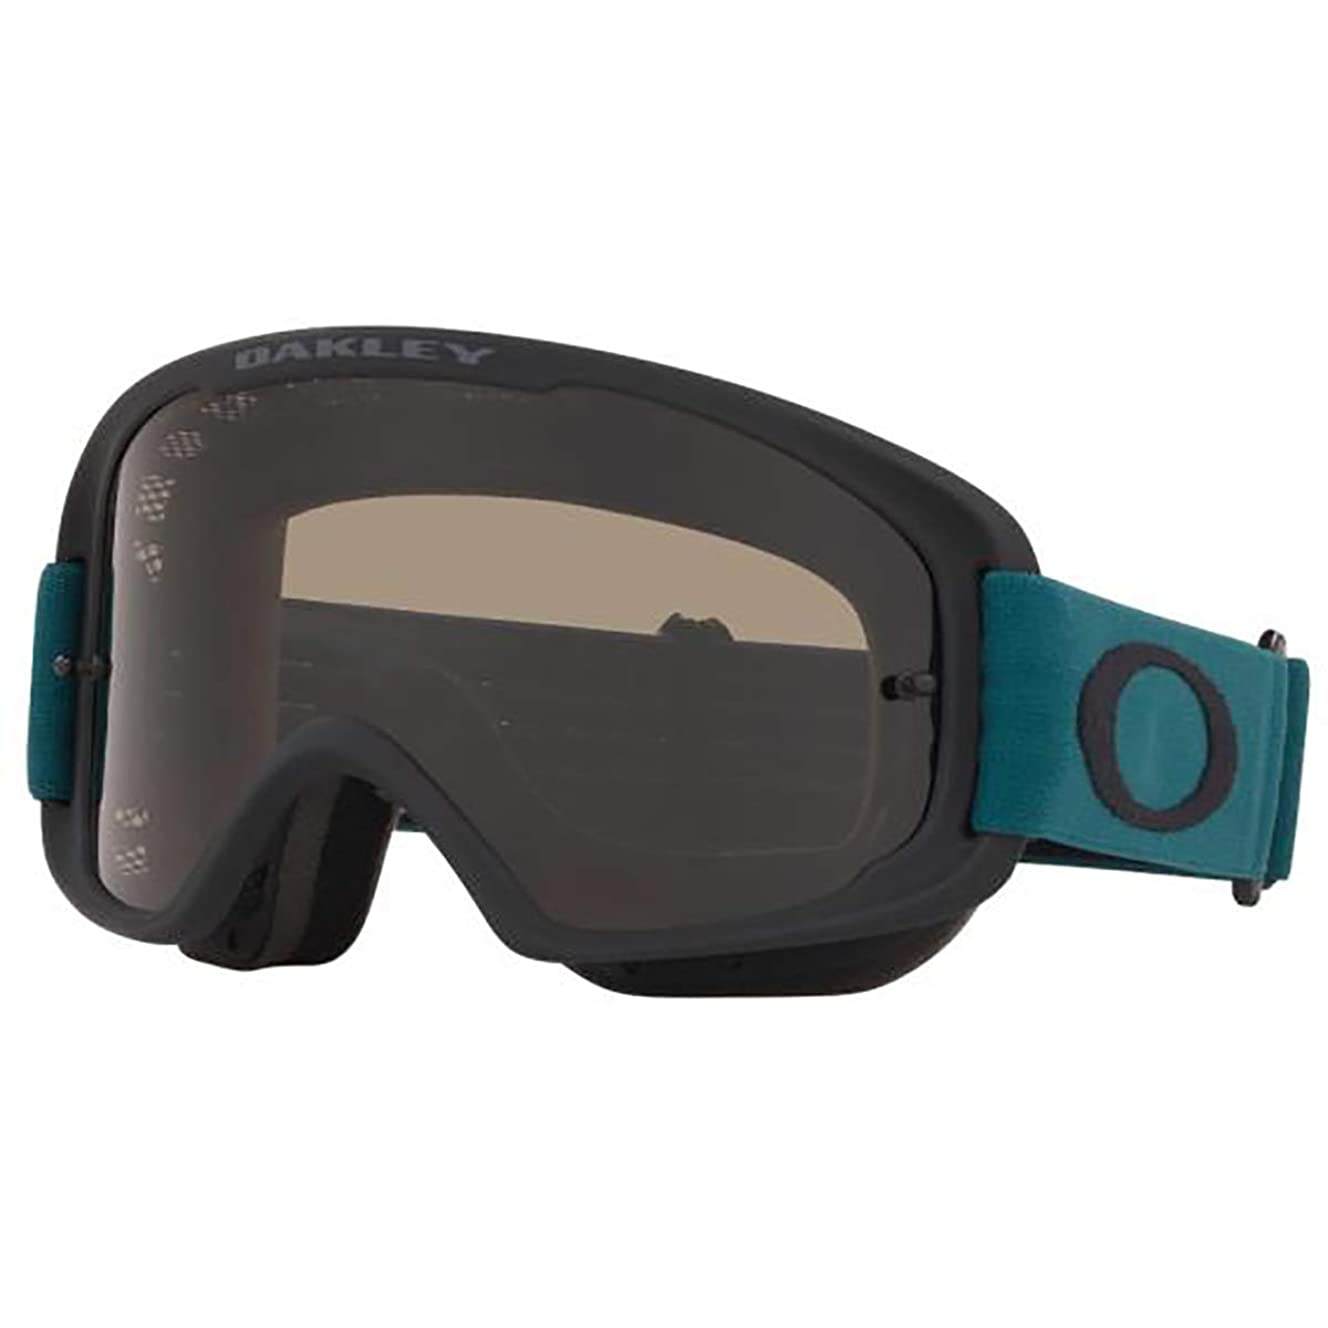 Oakley O-Frame 2.0 Men's MTB Off-Road Cycling Goggles - Balsam Black/Dark Grey & Clear/One Size